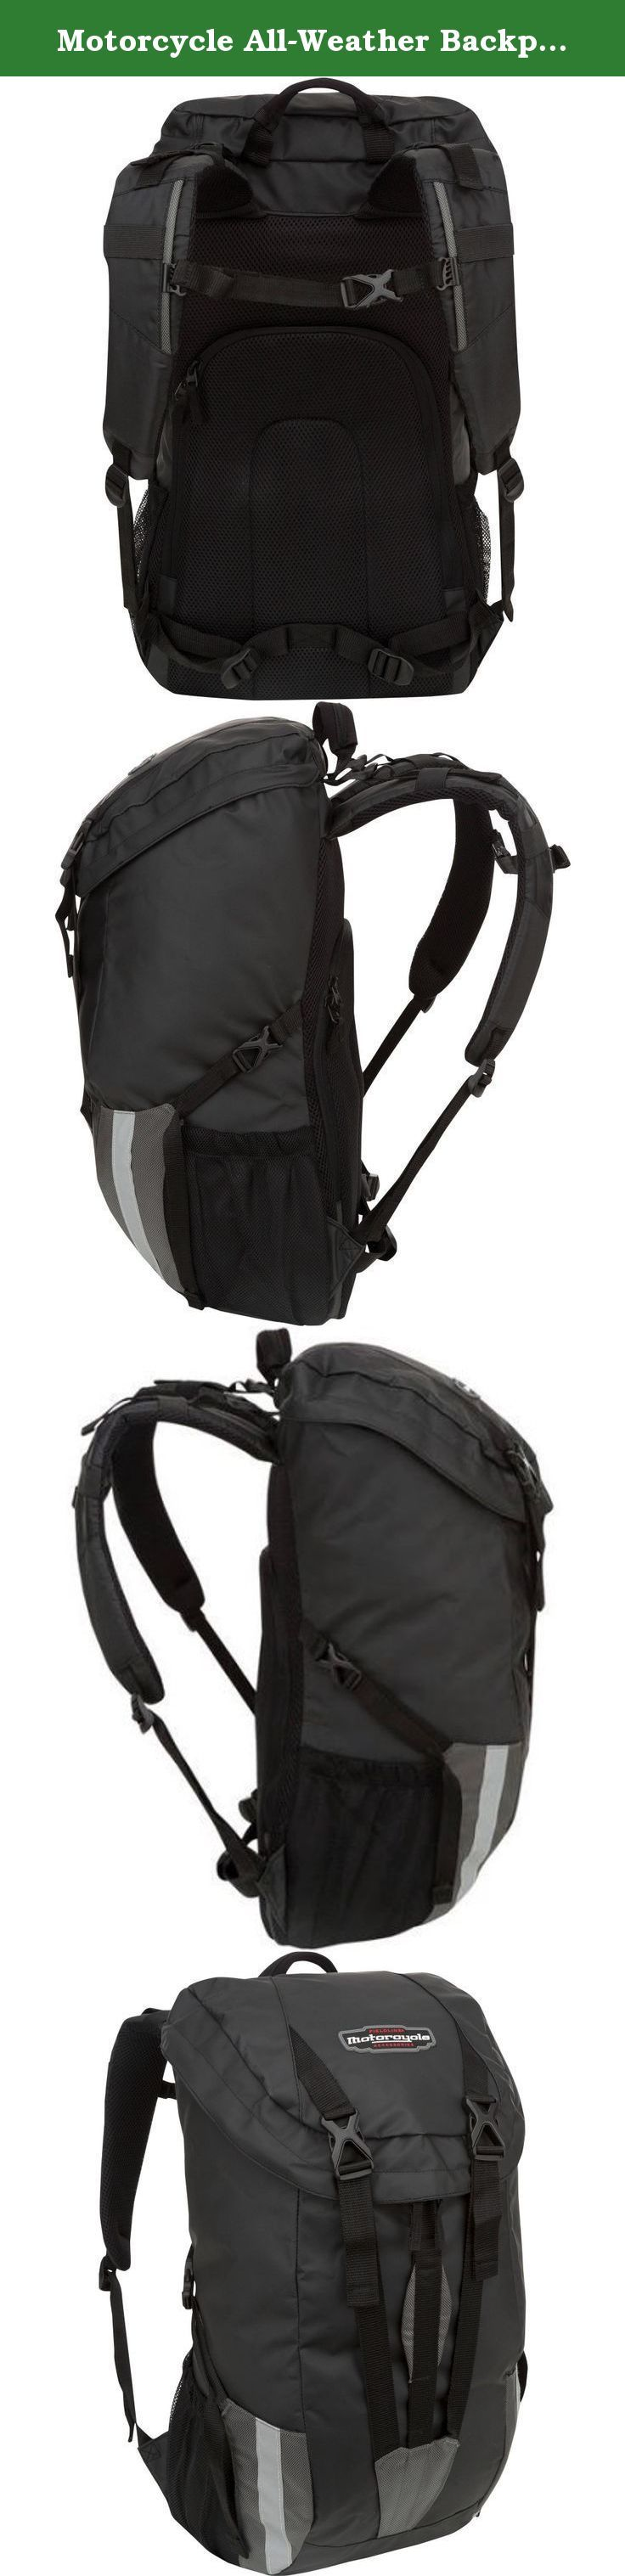 Motorcycle All-Weather Backpack, Black-Fieldline-NB002FL-008. The Fieldline Al-Weather Backpack is made from Weather Defense fabric. It easily slides onto a standard motorcycle backrest. With a roll-top closure, it's easy to retrieve items from it quickly. This Fieldline motorcycle backpack also comes with an all-purpose front carry handle. Two side compression straps and an accessory organizer help to keep your items in place during long rides. This item also features unique internal and...